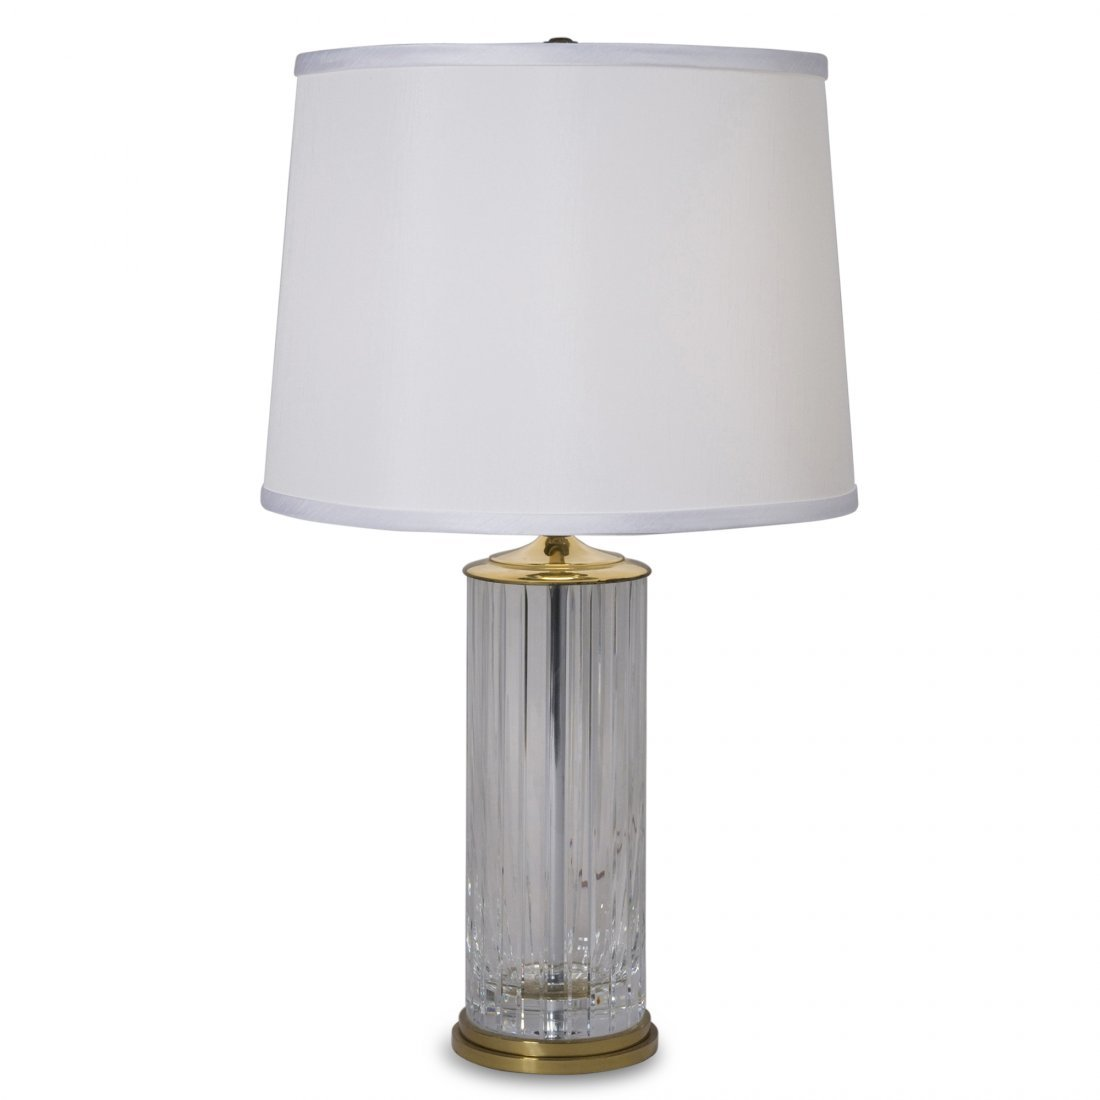 Crystal Table Lamp by Baccarat